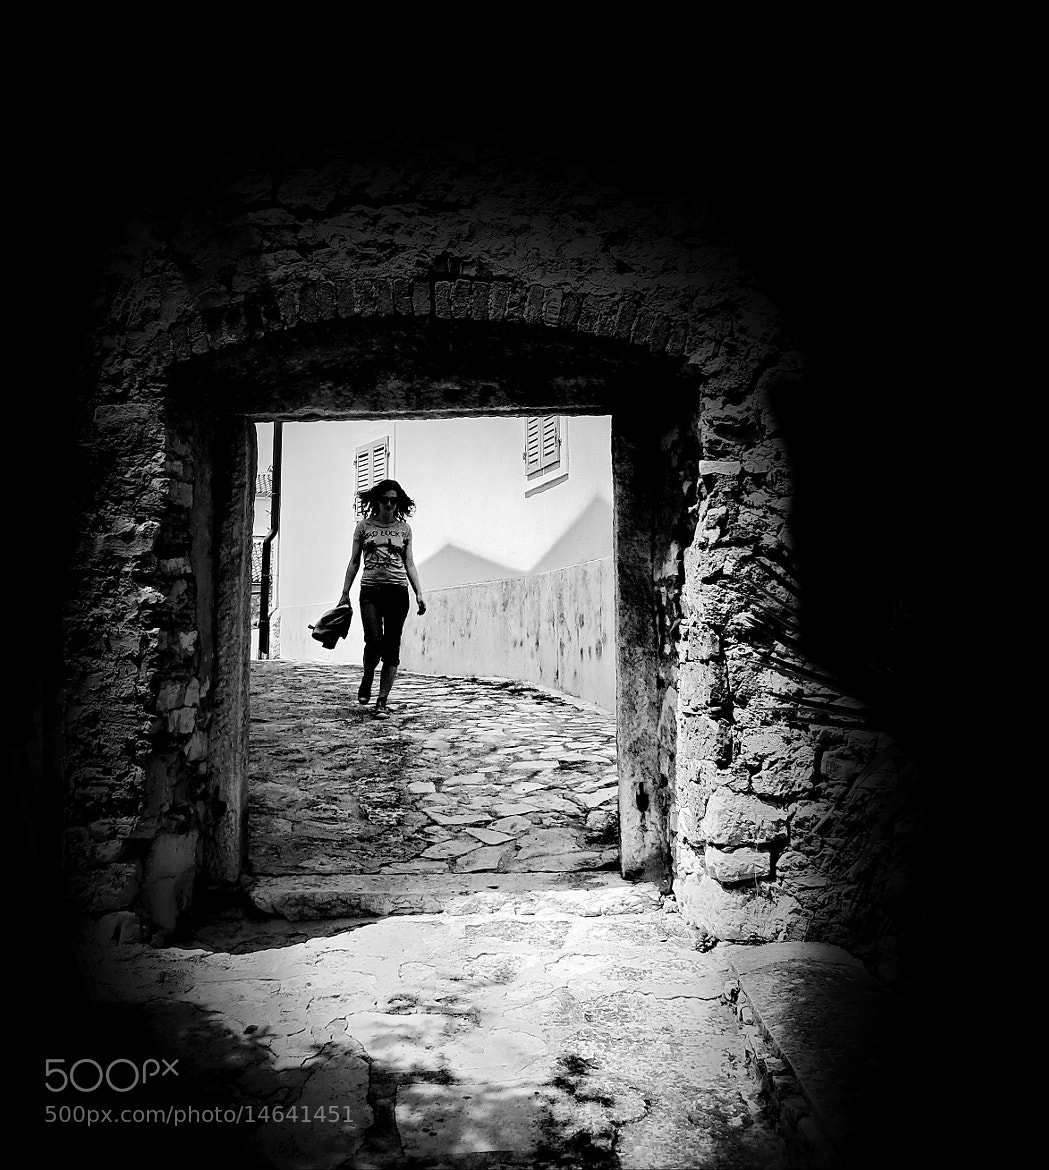 Photograph come to me by Dragan Djuric on 500px